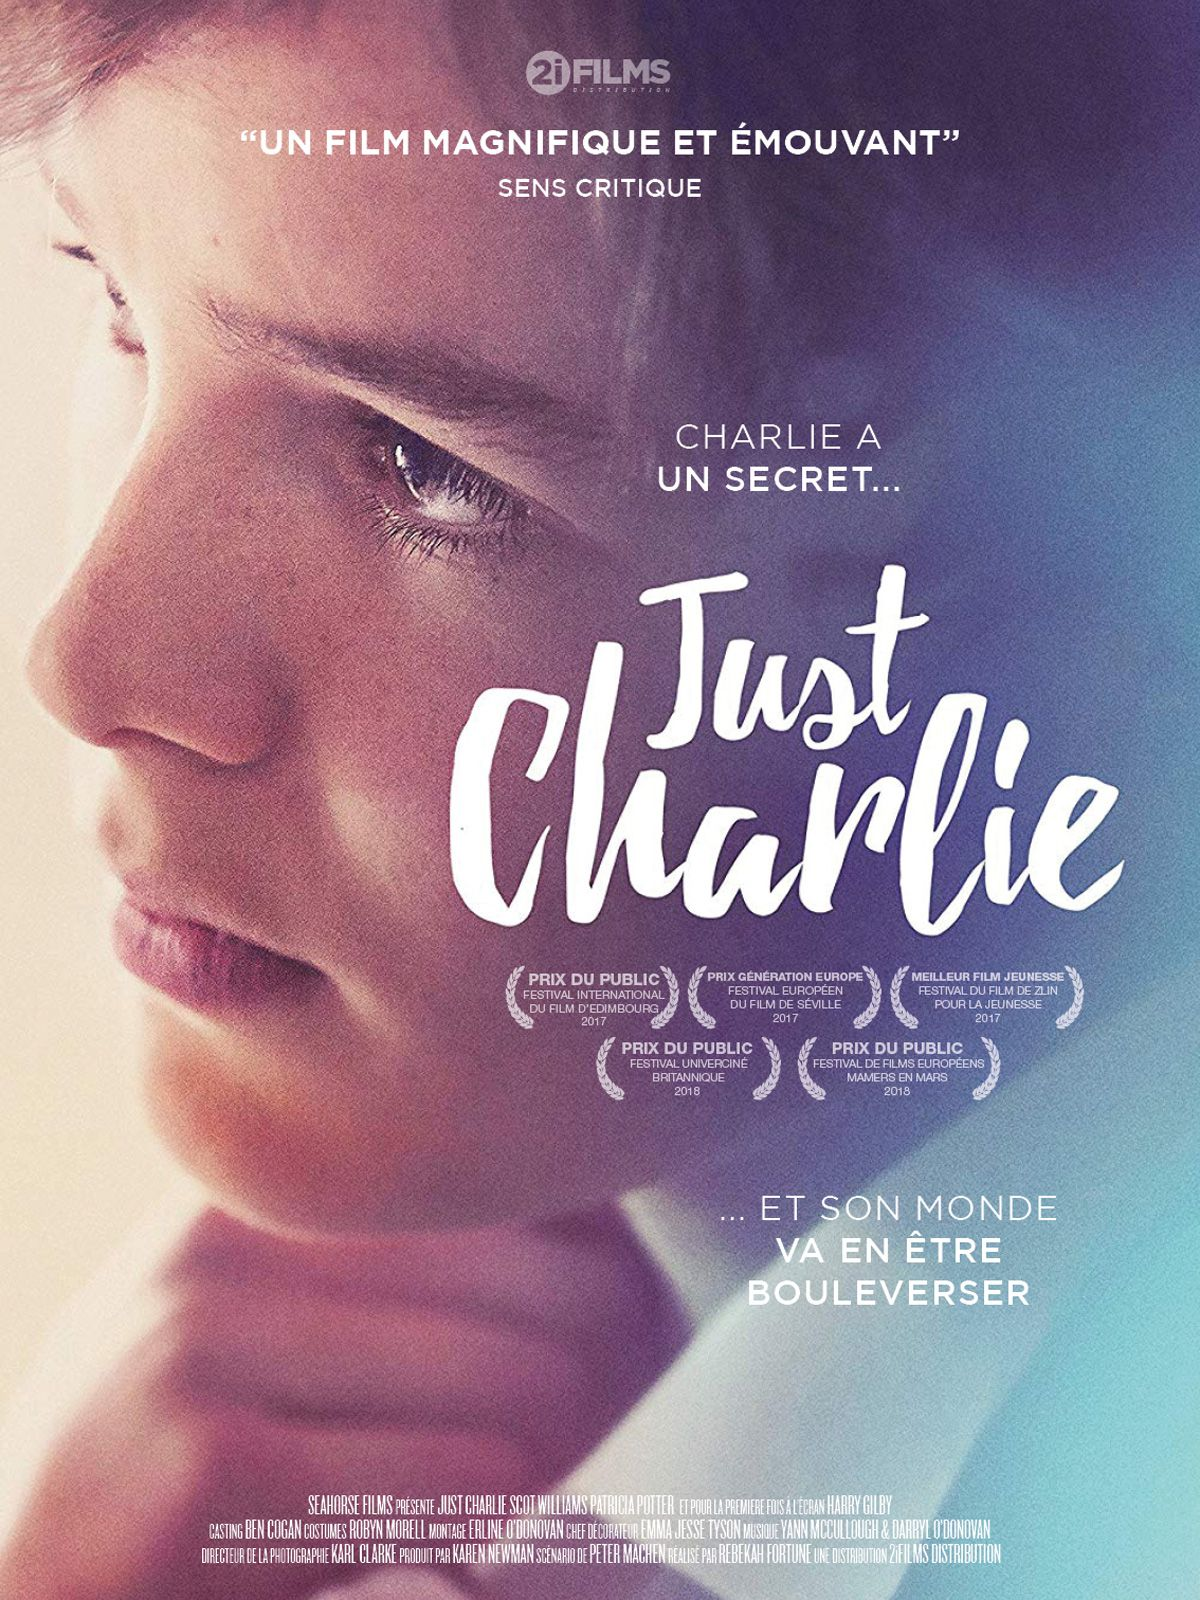 Just Charlie - Film (2019) streaming VF gratuit complet